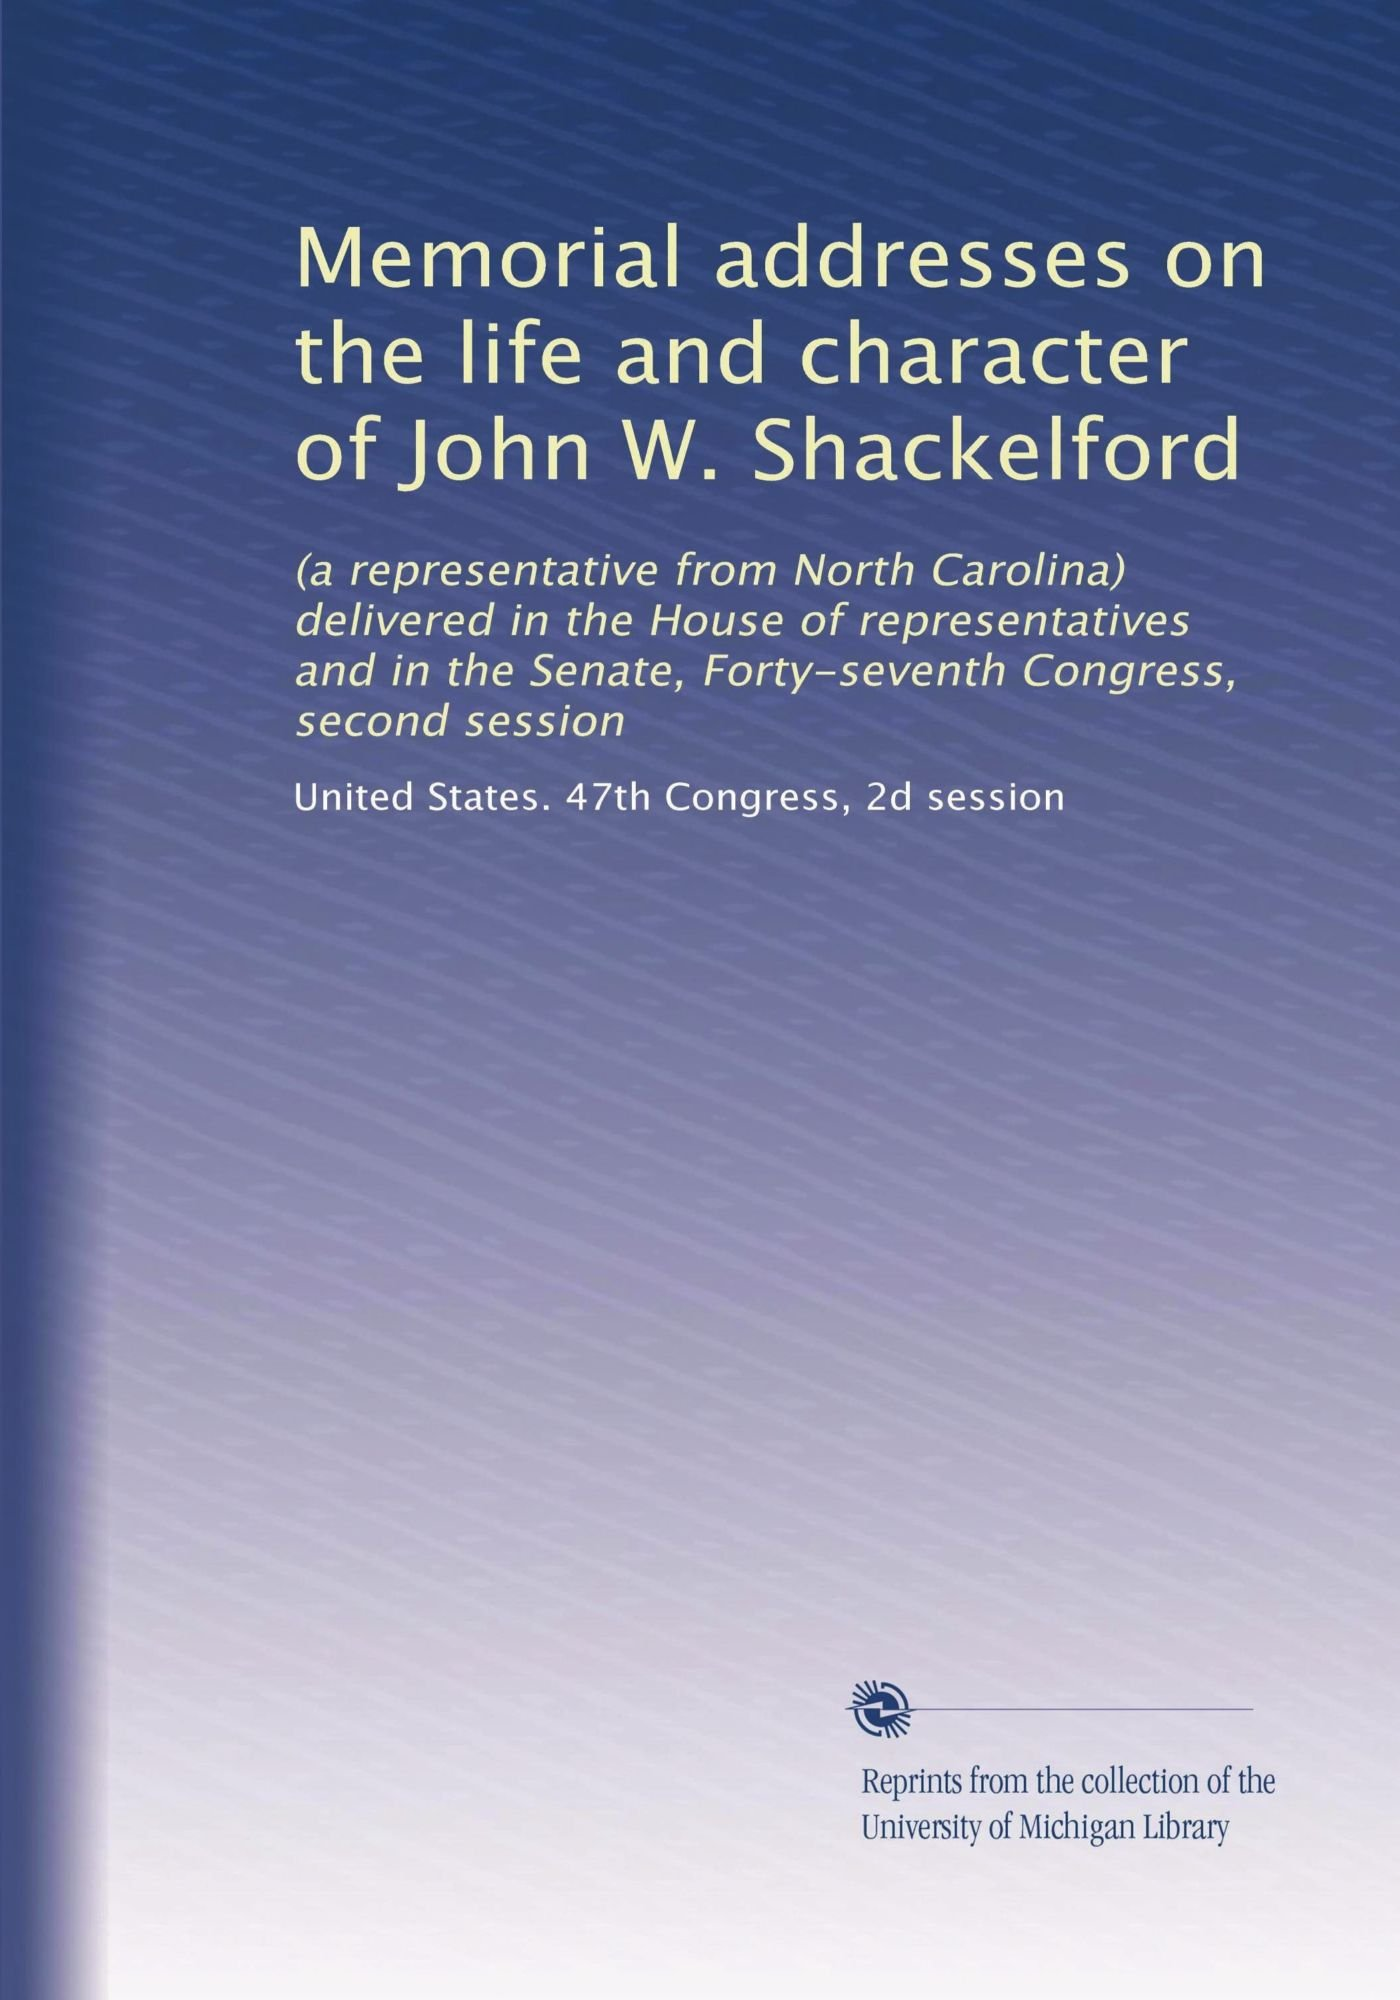 Download Memorial addresses on the life and character of John W. Shackelford: (a representative from North Carolina) delivered in the House of representatives ... Forty-seventh Congress, second session pdf